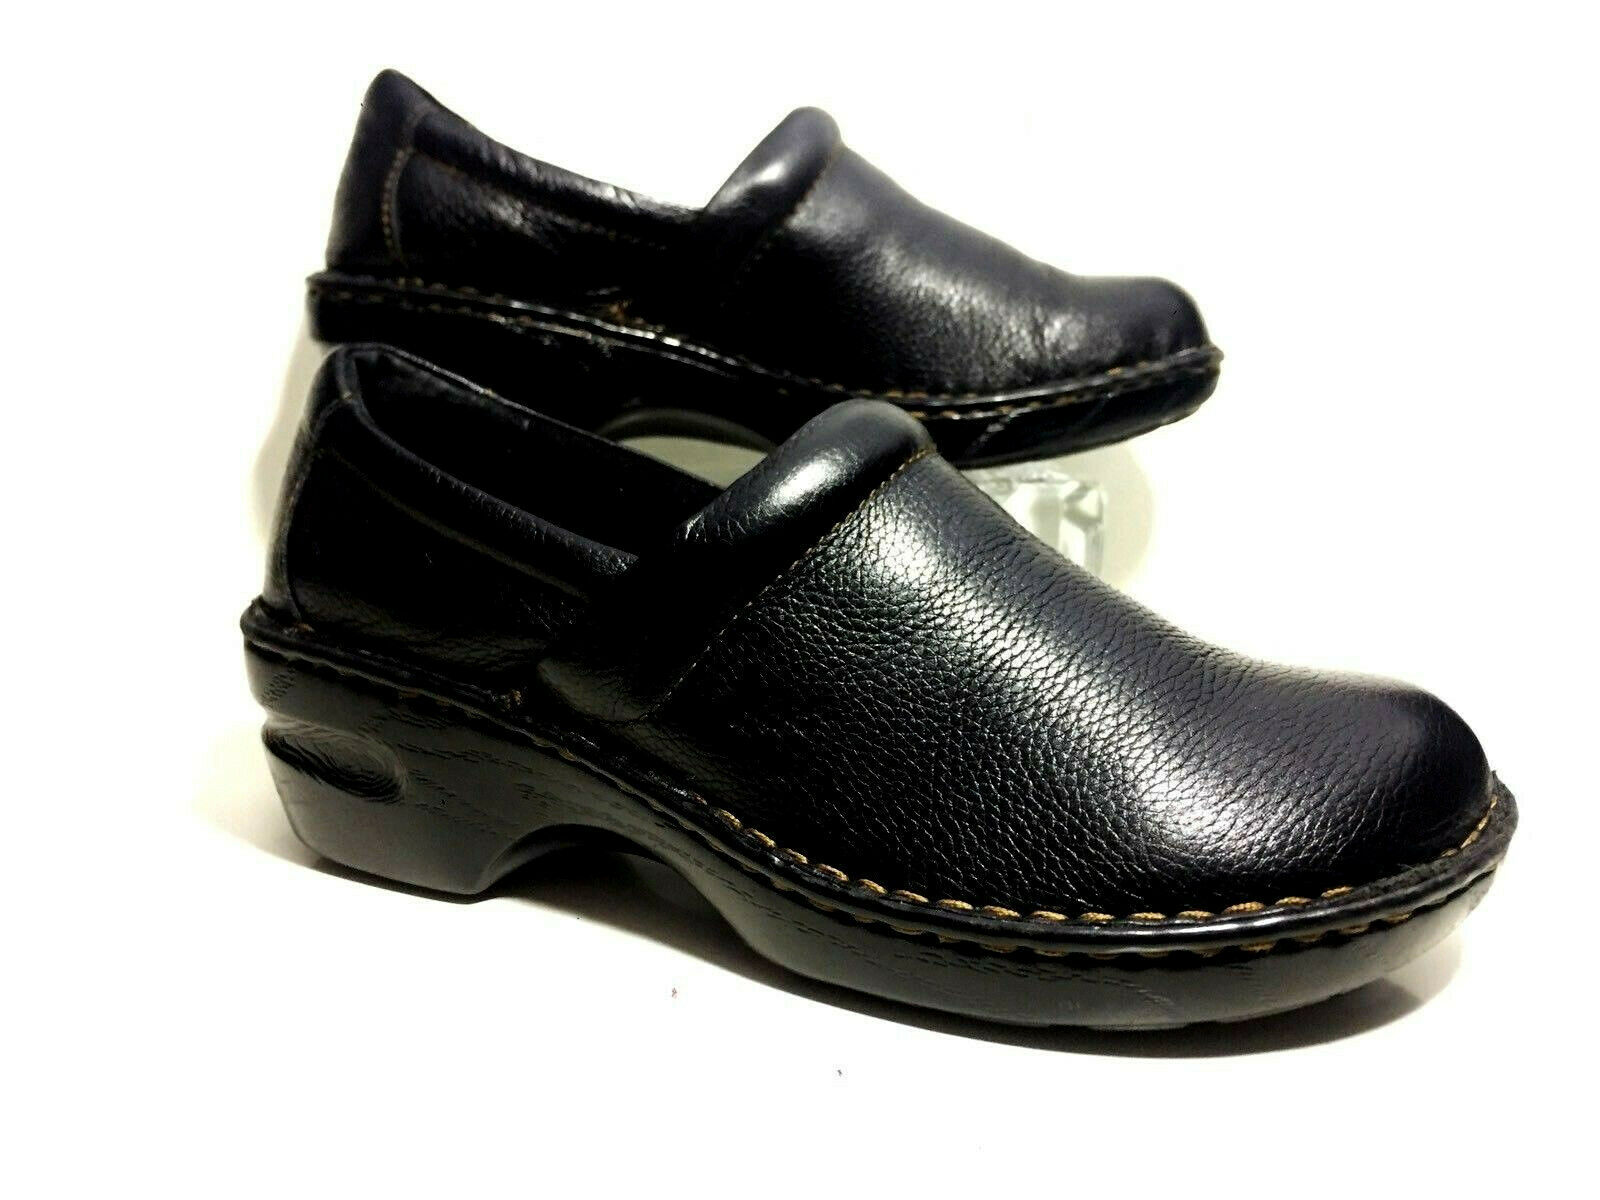 B.O.C Born Concept Slip On Clogs 9.5 M Black Leather Wedge Womens shoes